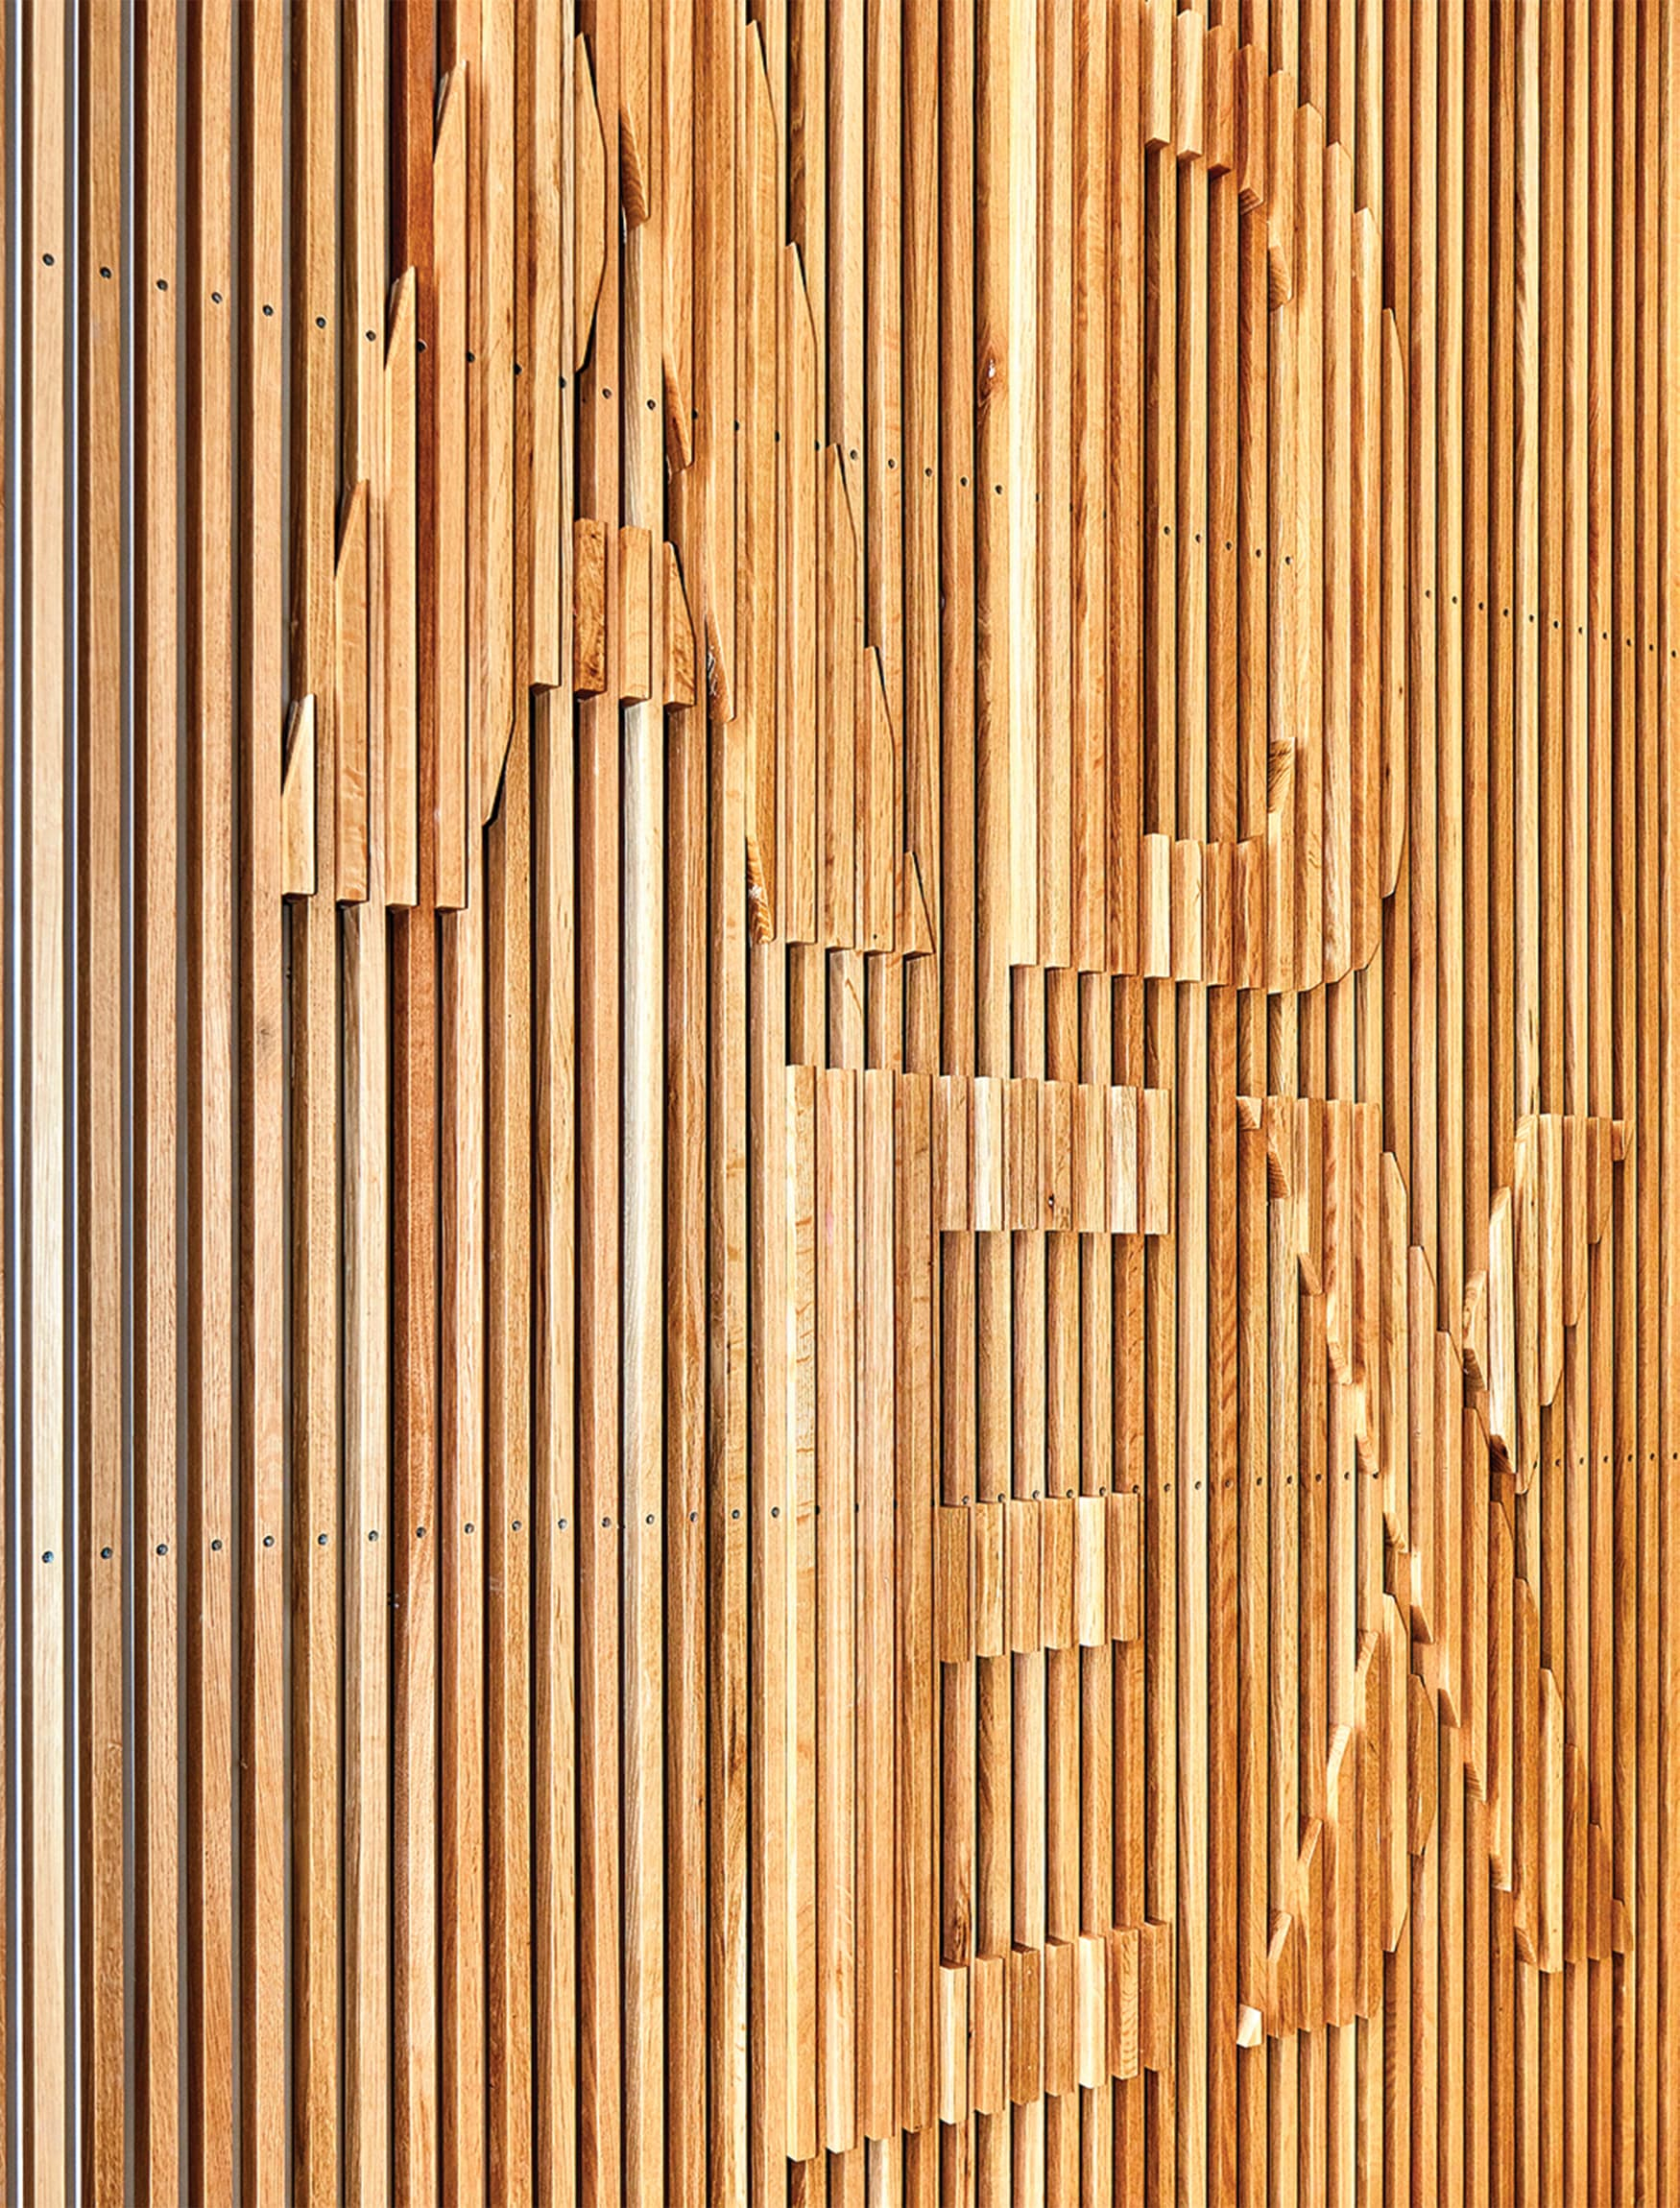 Architecture and Design Exchange wood-slat-relief signage